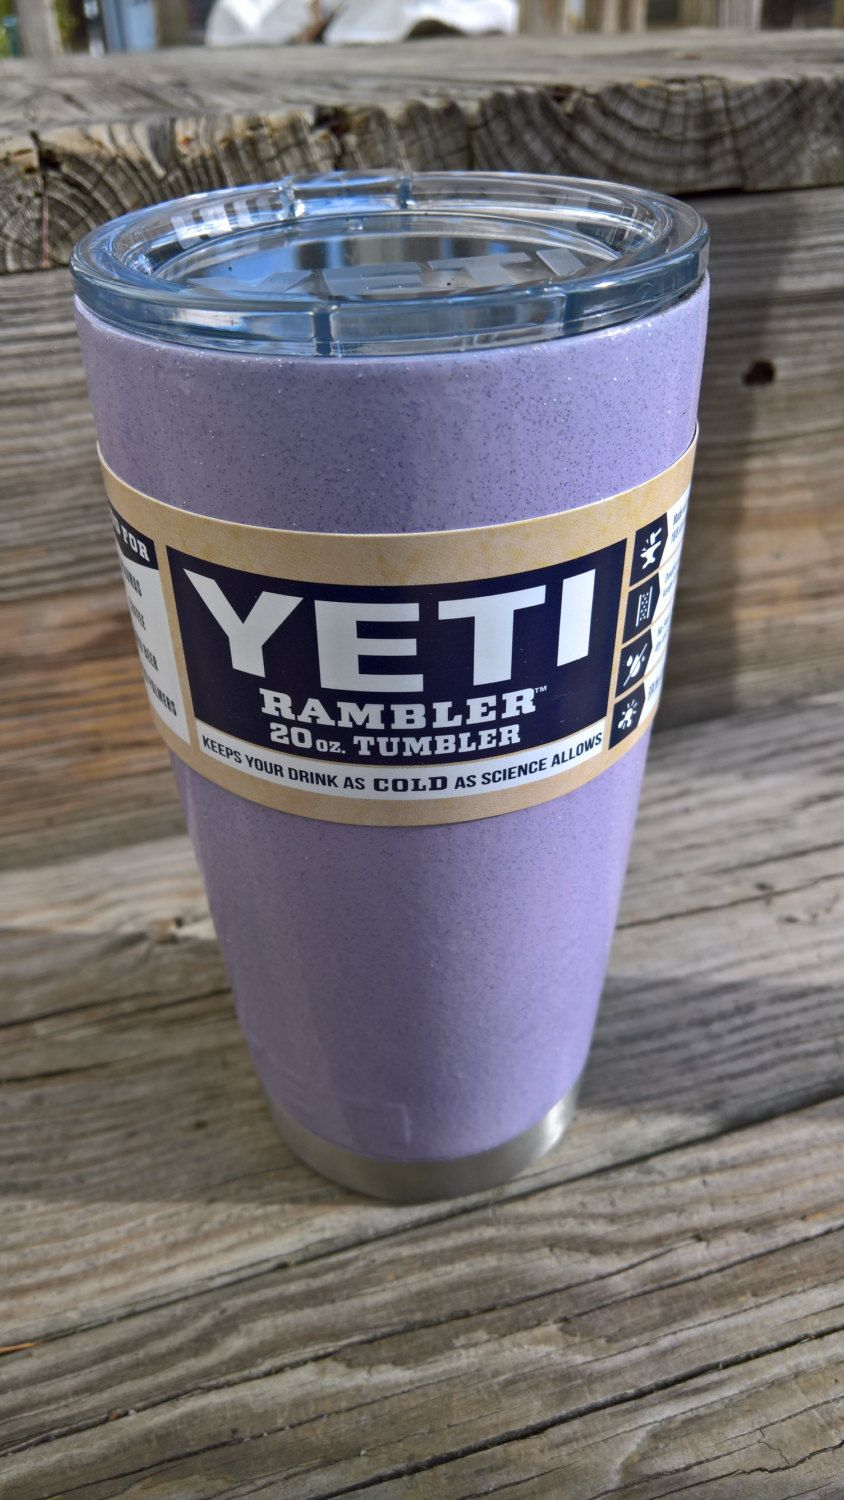 Glitter coated YETI Stainless Steel 20 oz Rambler